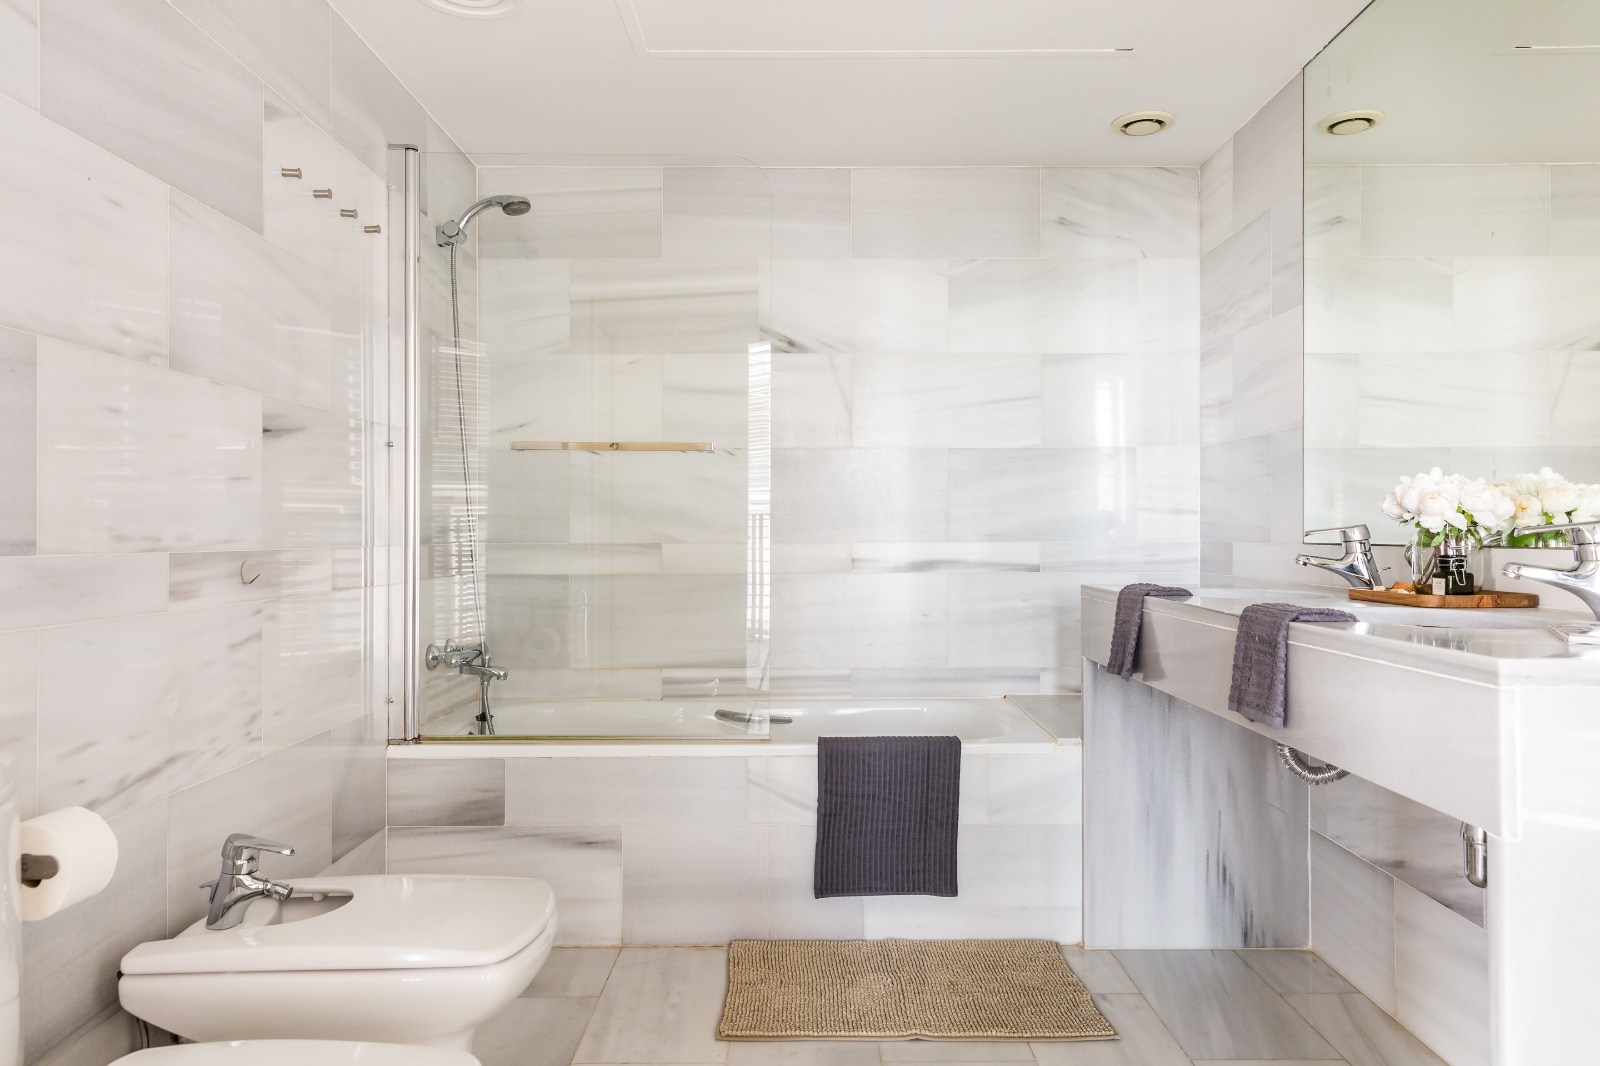 Interior Design Styles for Your New Barcelona Home 8 Interior Design Styles for Your New Barcelona Home